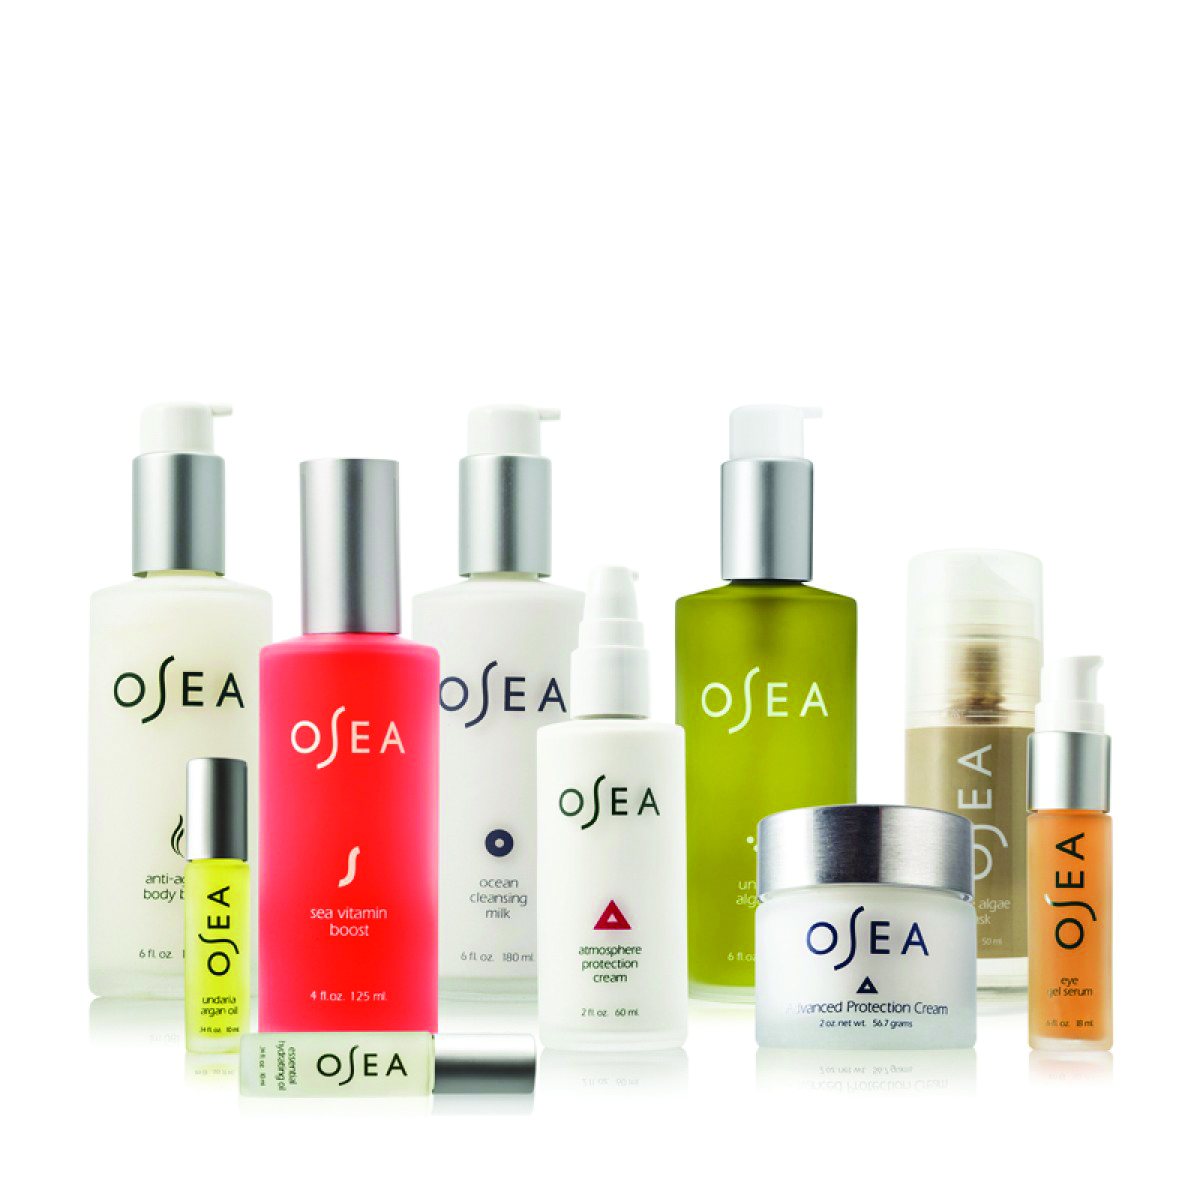 Organic, Effective Skincare at the Spa and at Home